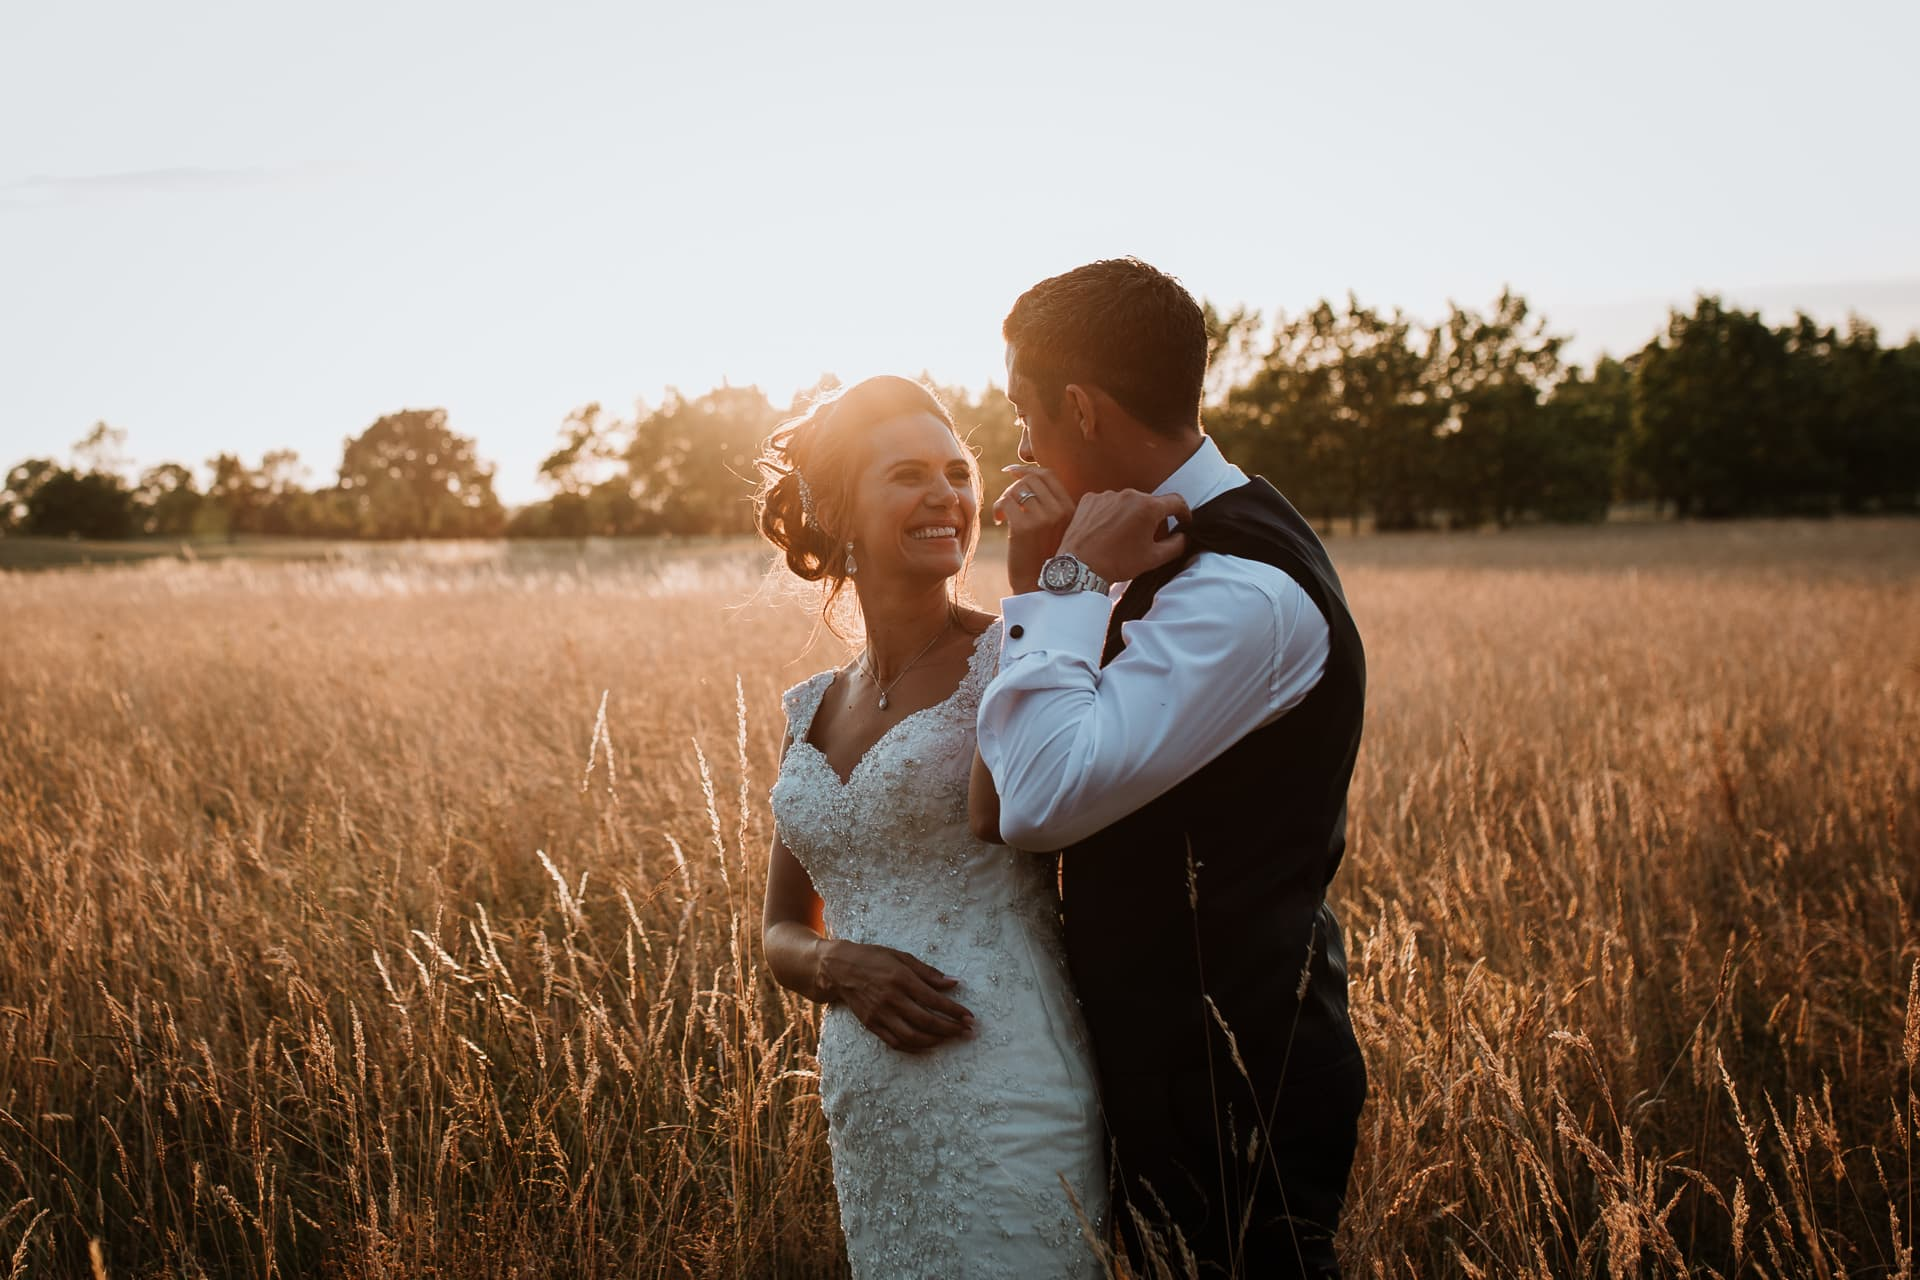 Bride and Groom looking at each other in field bathed in golden sunlight